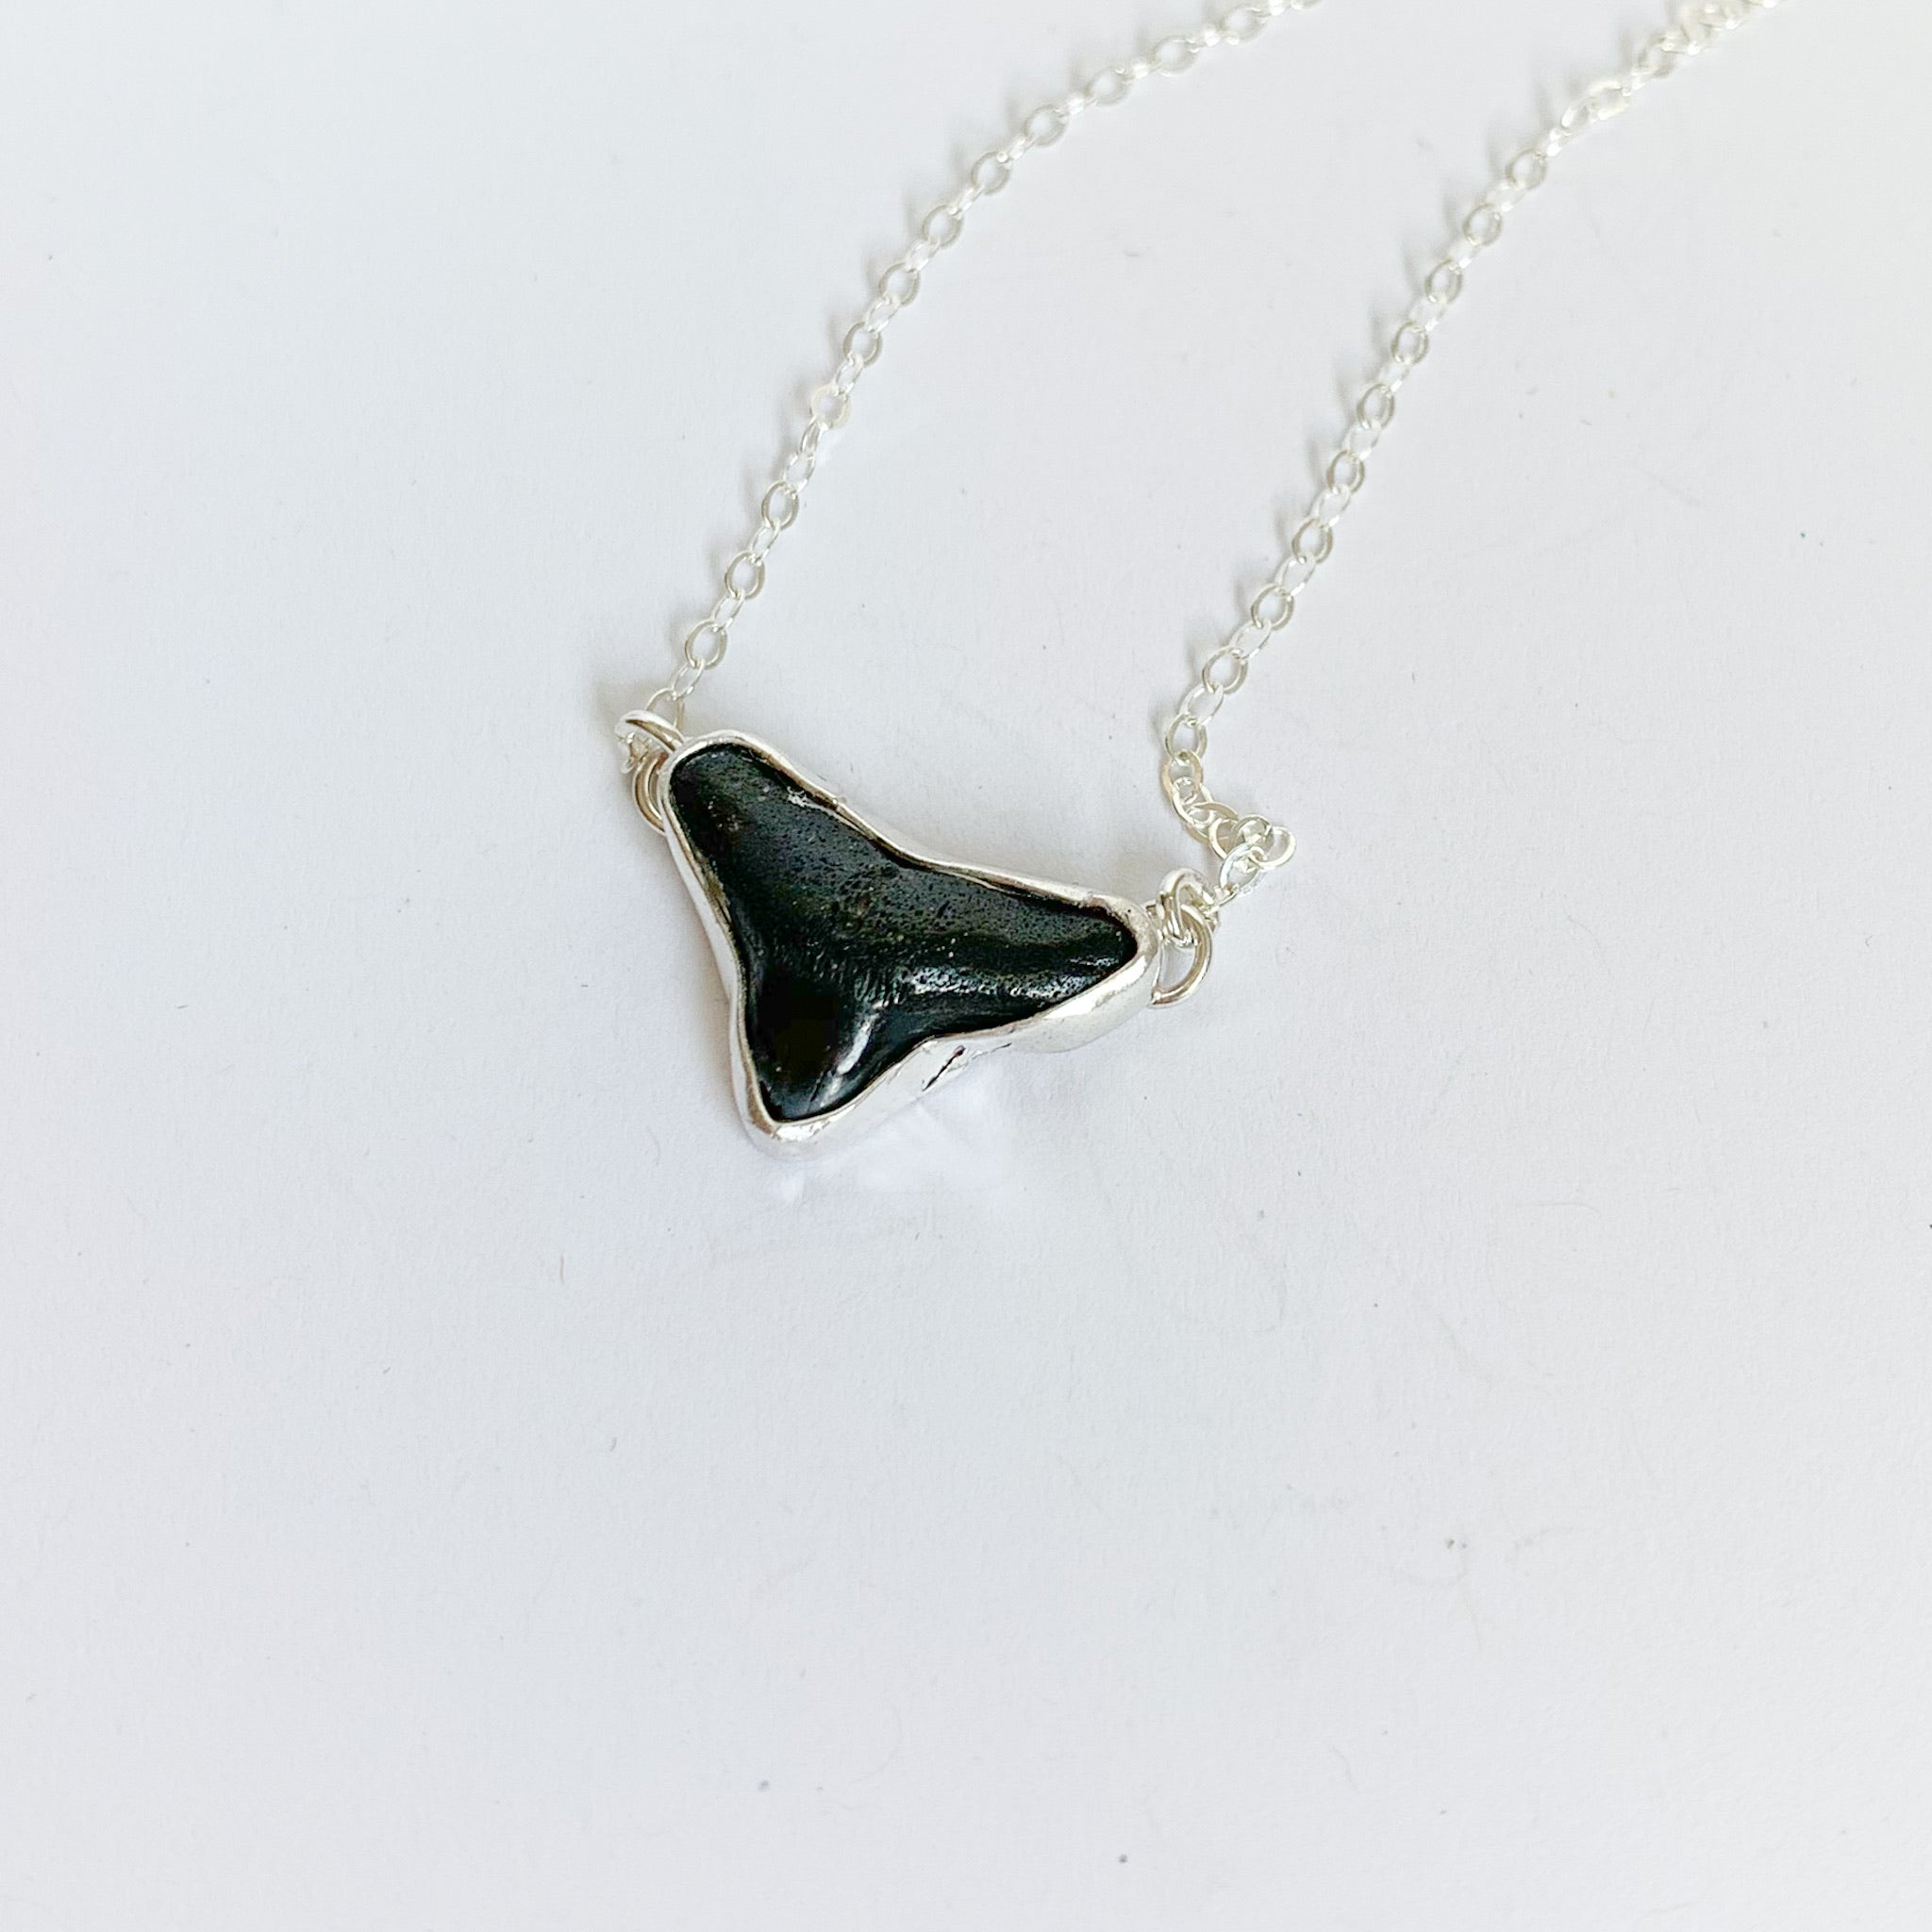 Shark tooth necklace - sterling silver - black